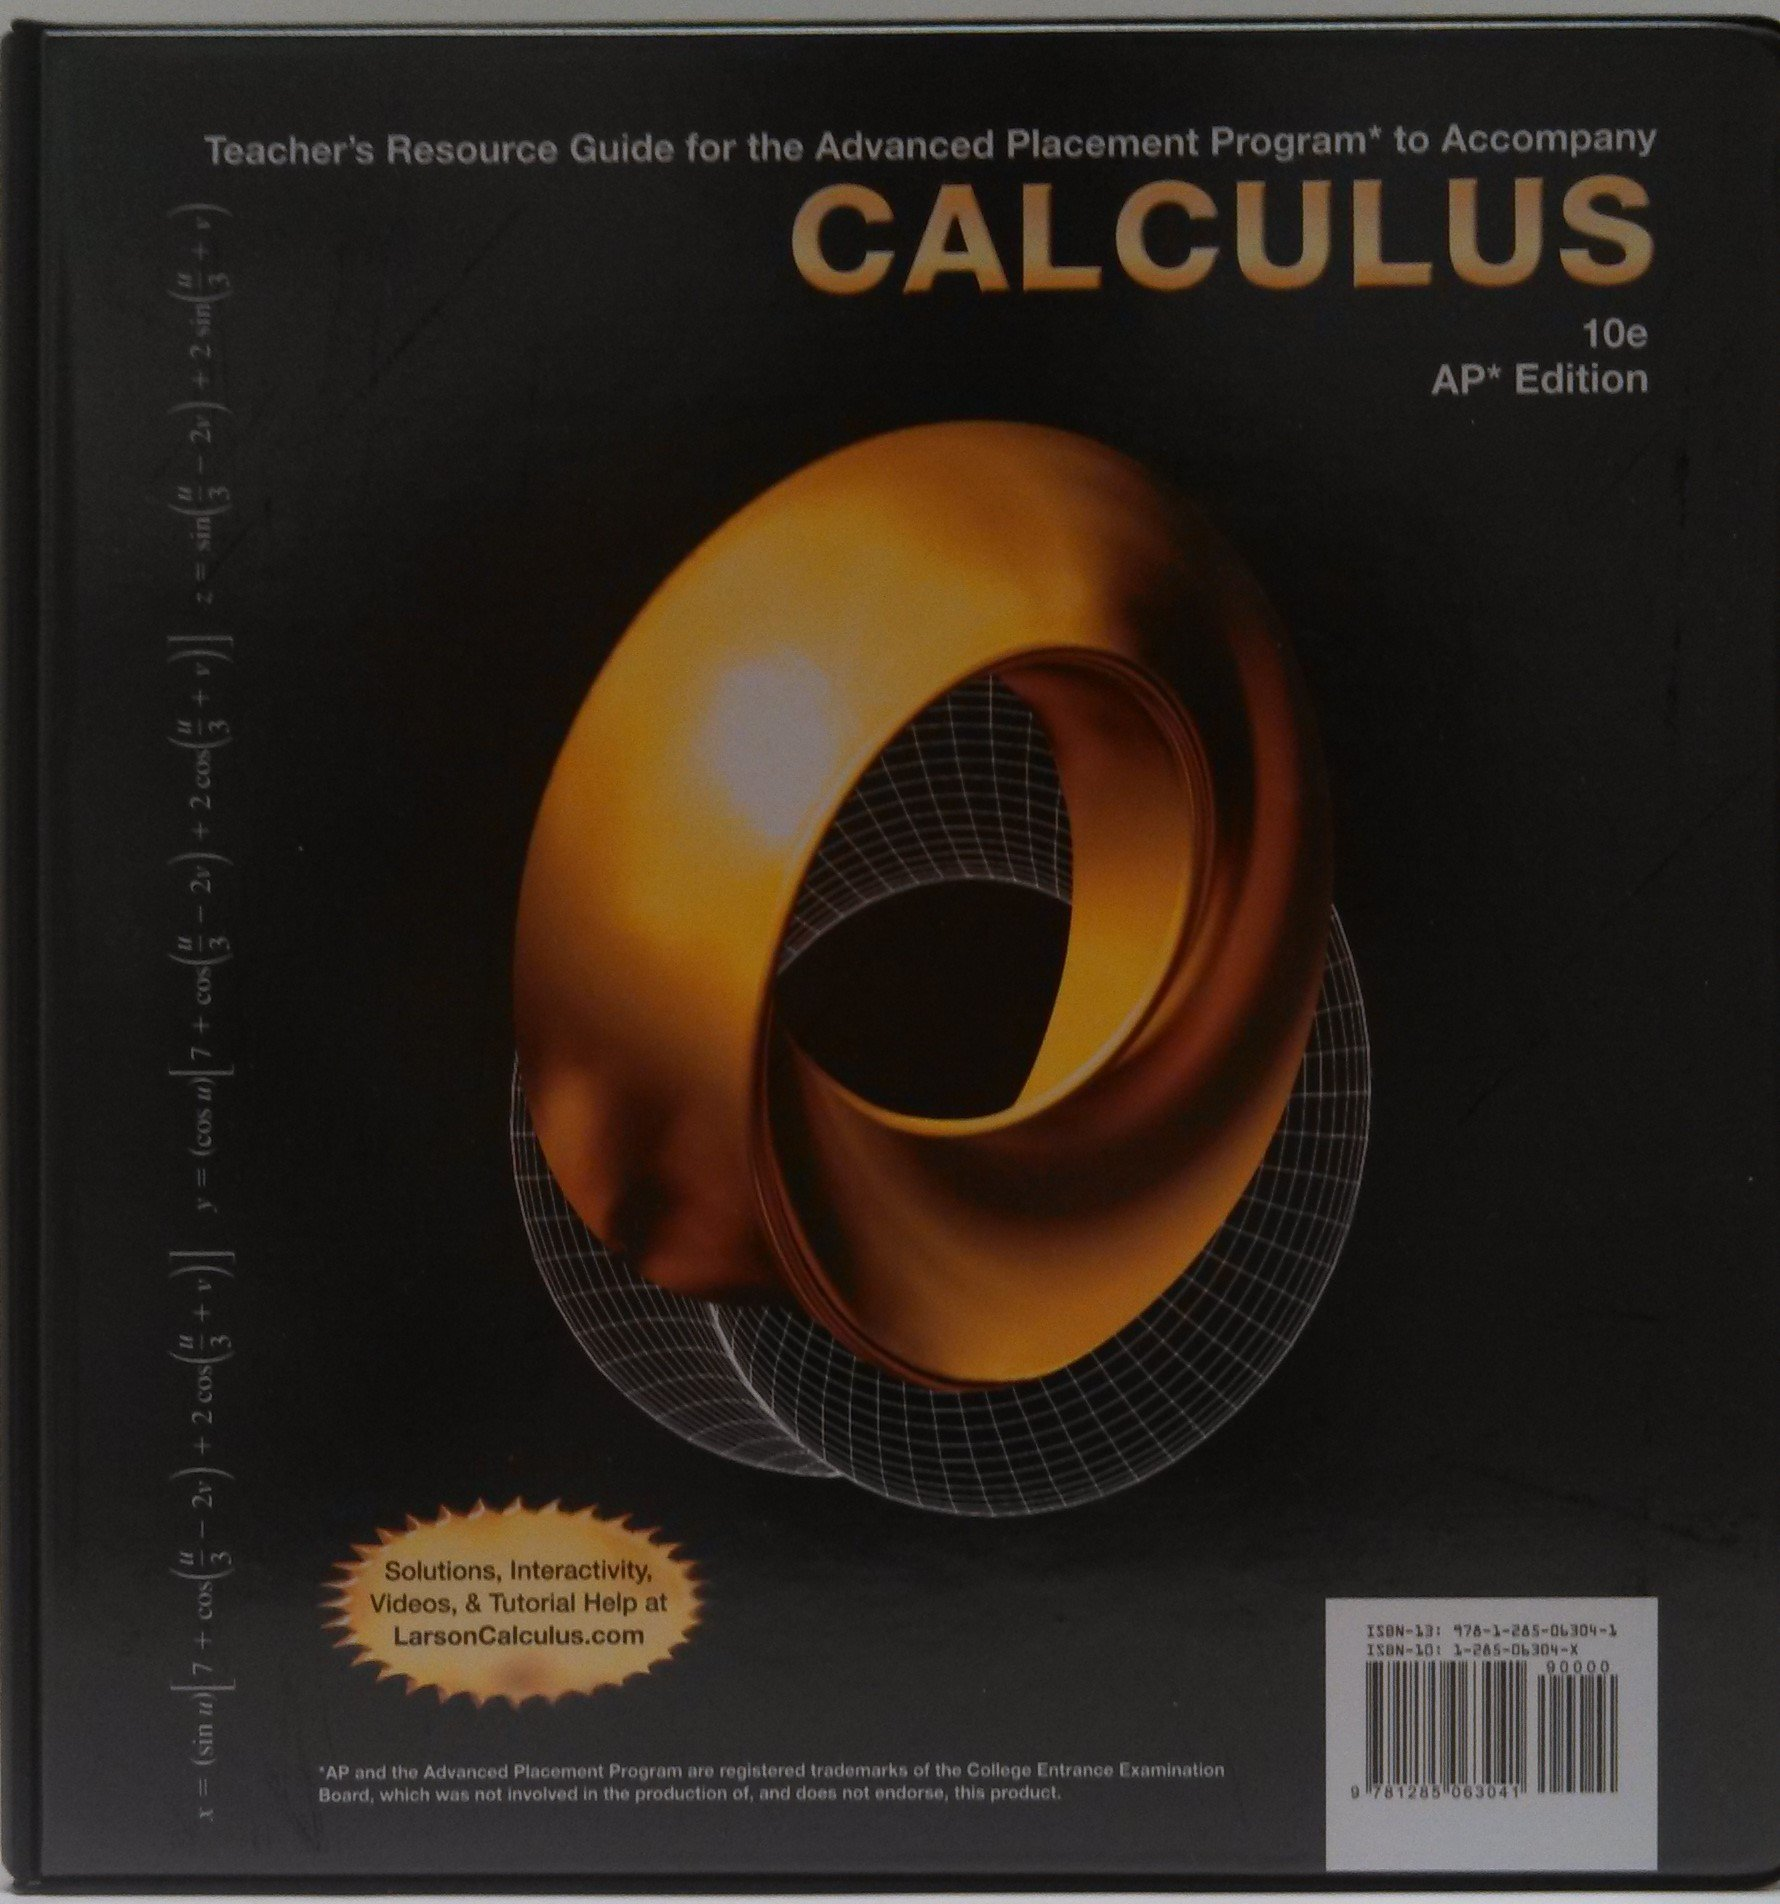 Calculus: Teacher's Resource Guide for the Advanced Placement Program by  Larson and Edwards, 10th edition, AP edition: Amazon.com: Books